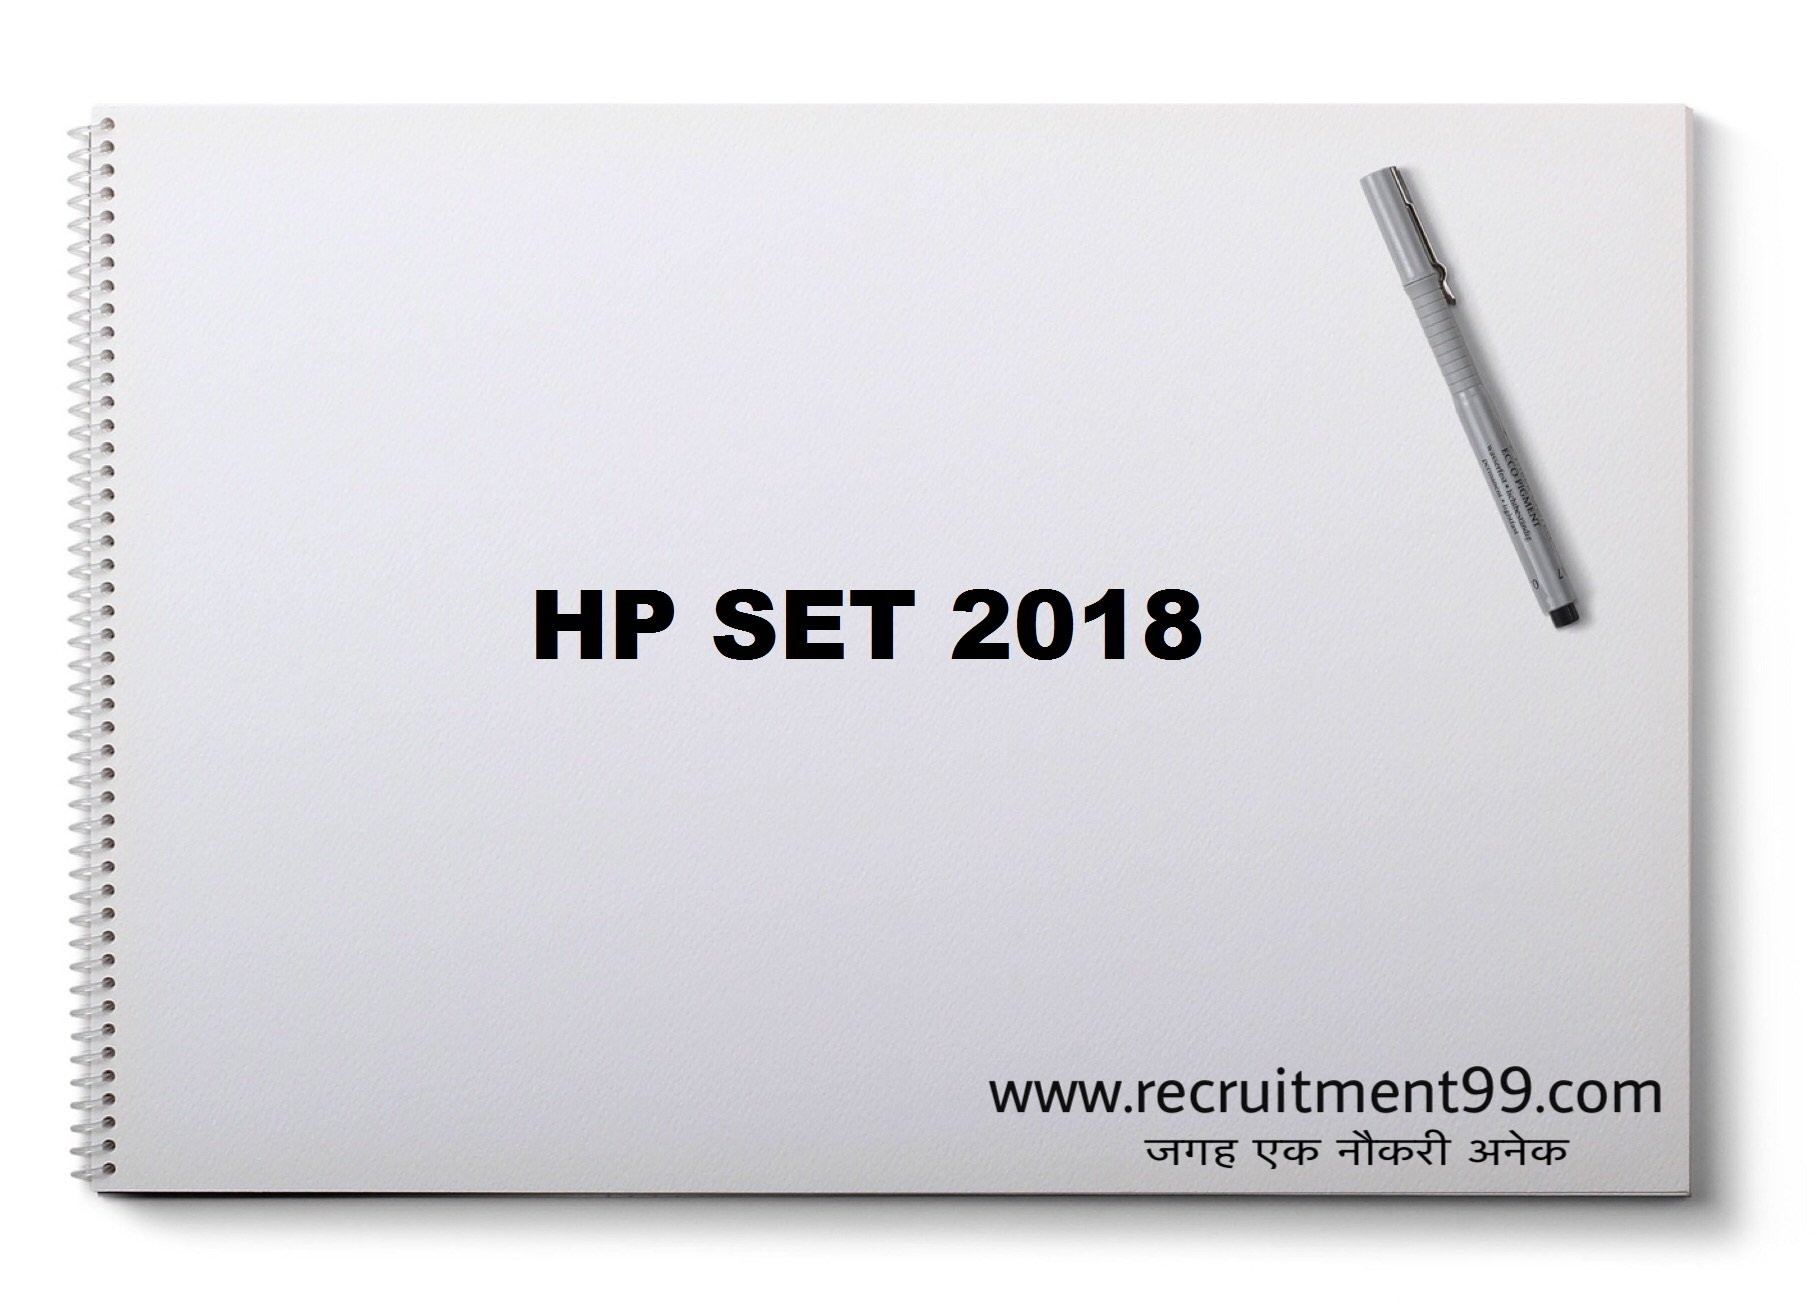 HP SET Application Form Admit Card Result Answer Key 2018